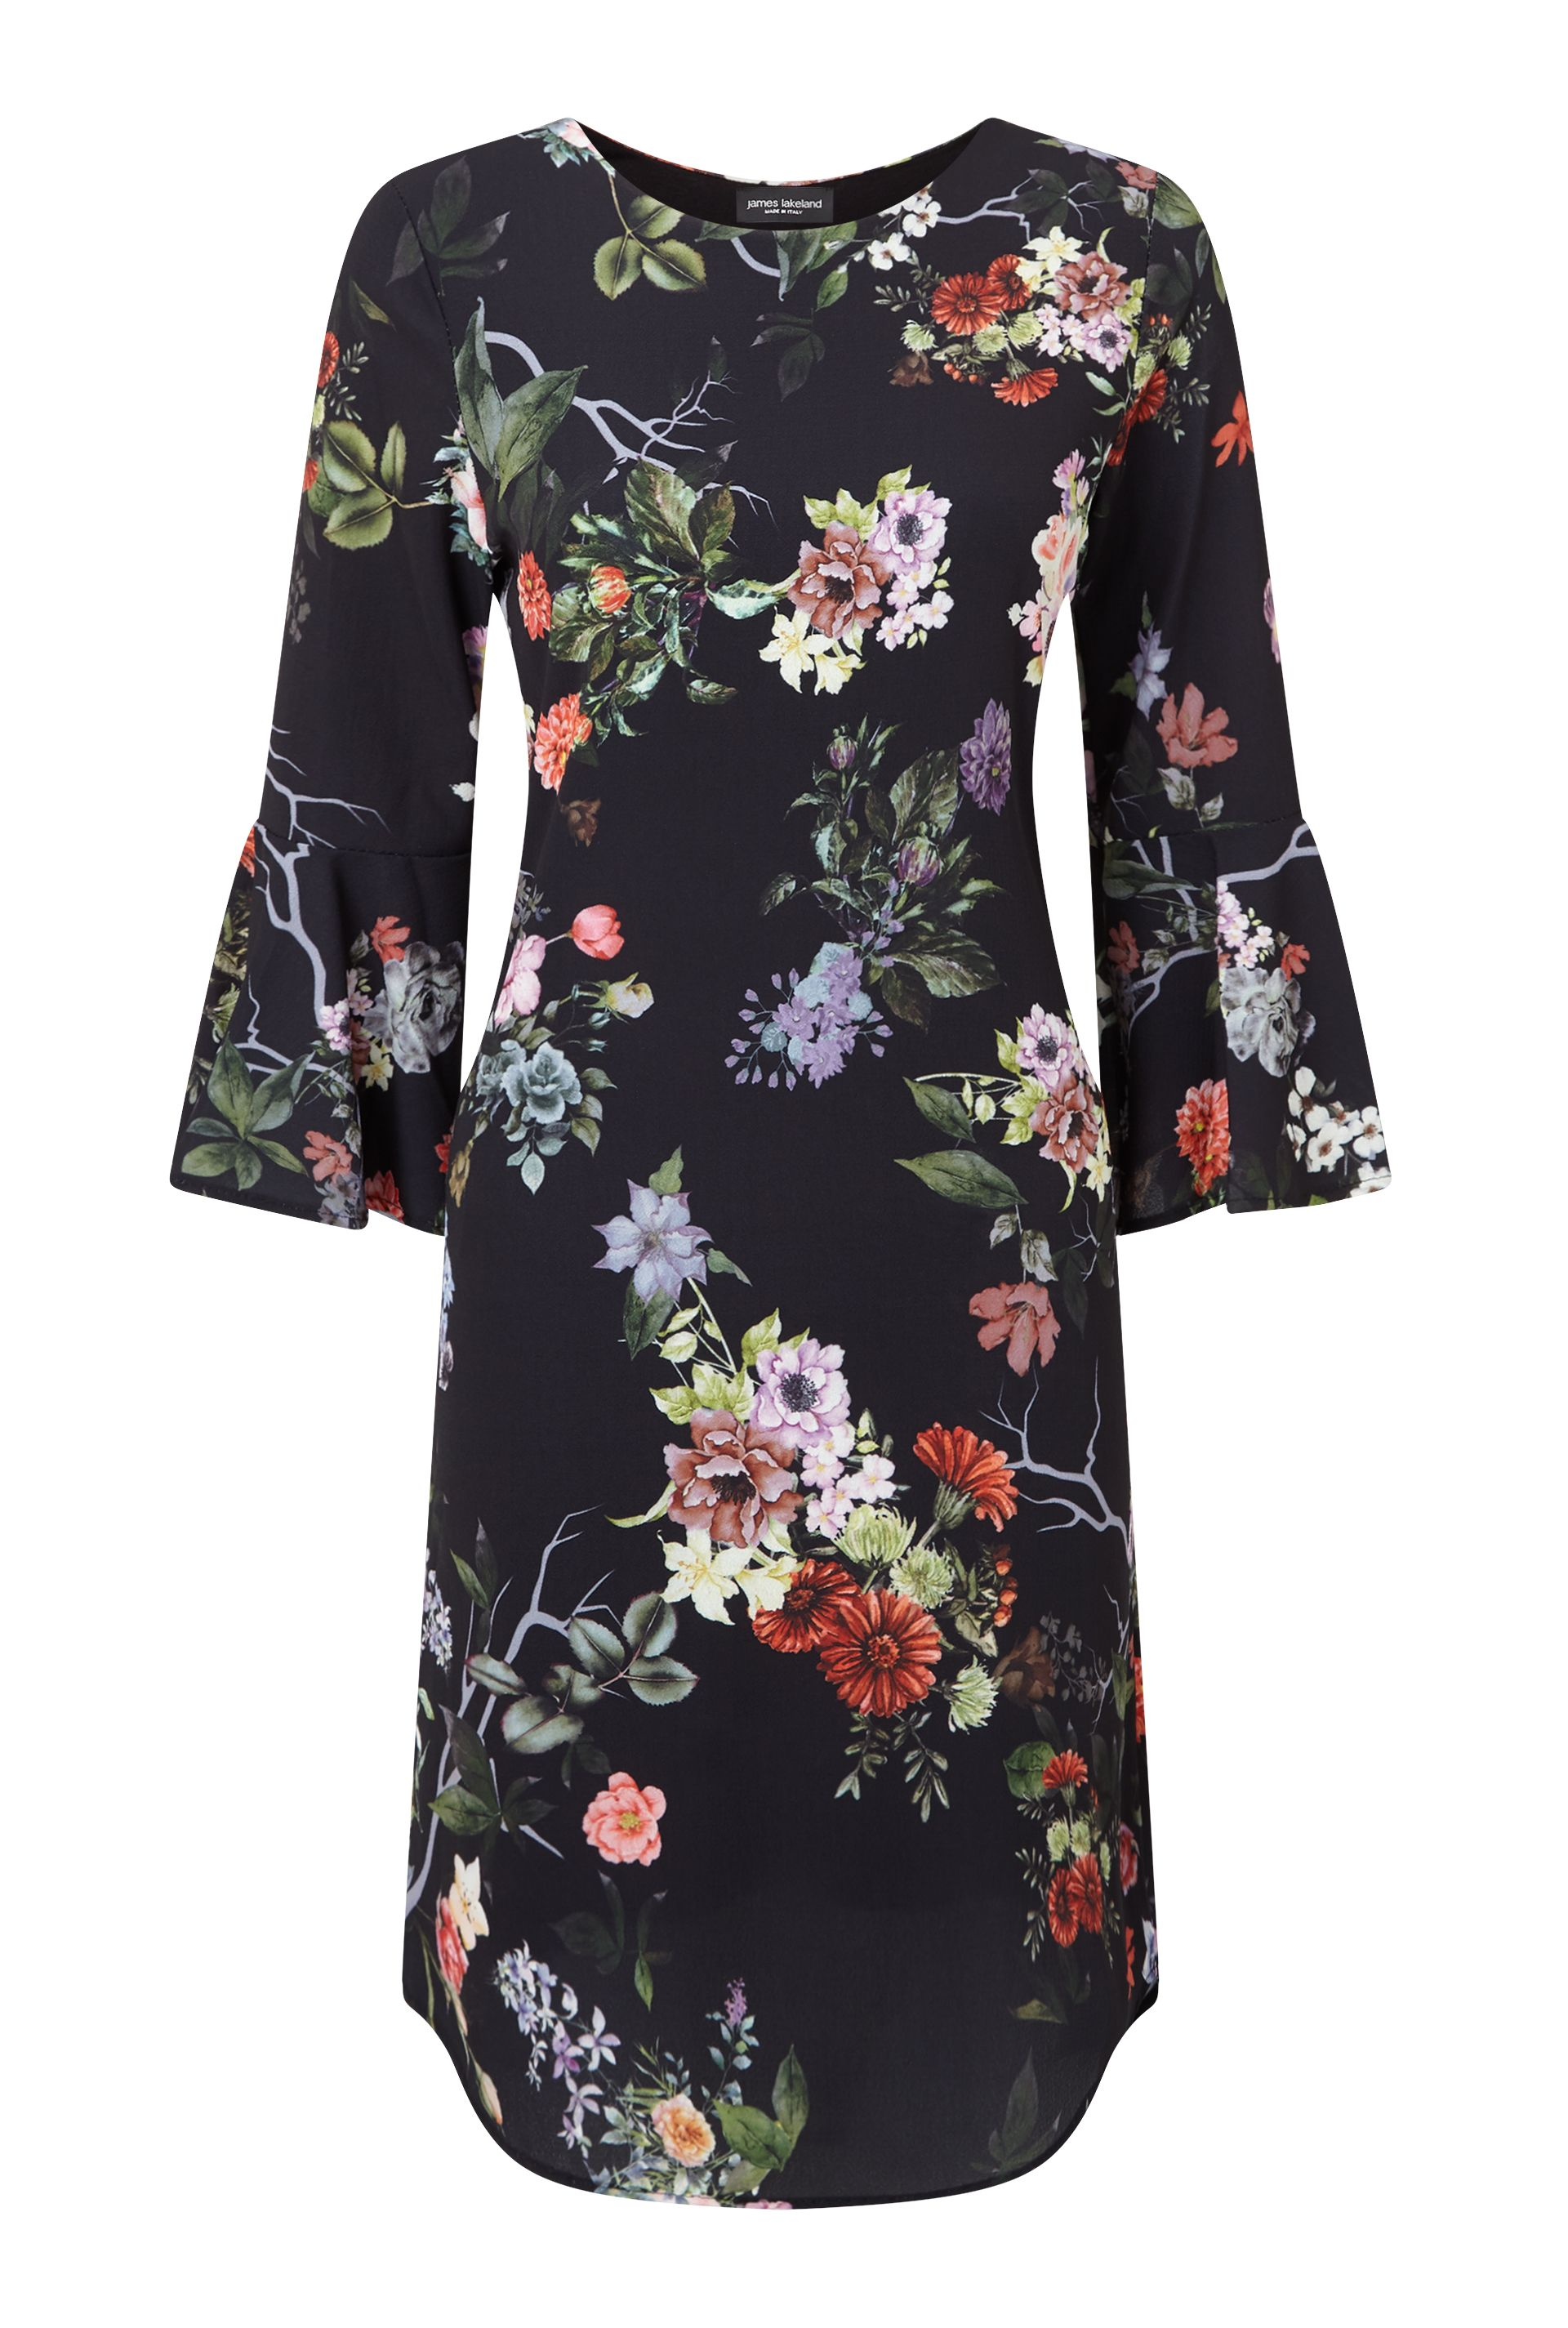 James Lakeland Floral Print Dress, Black